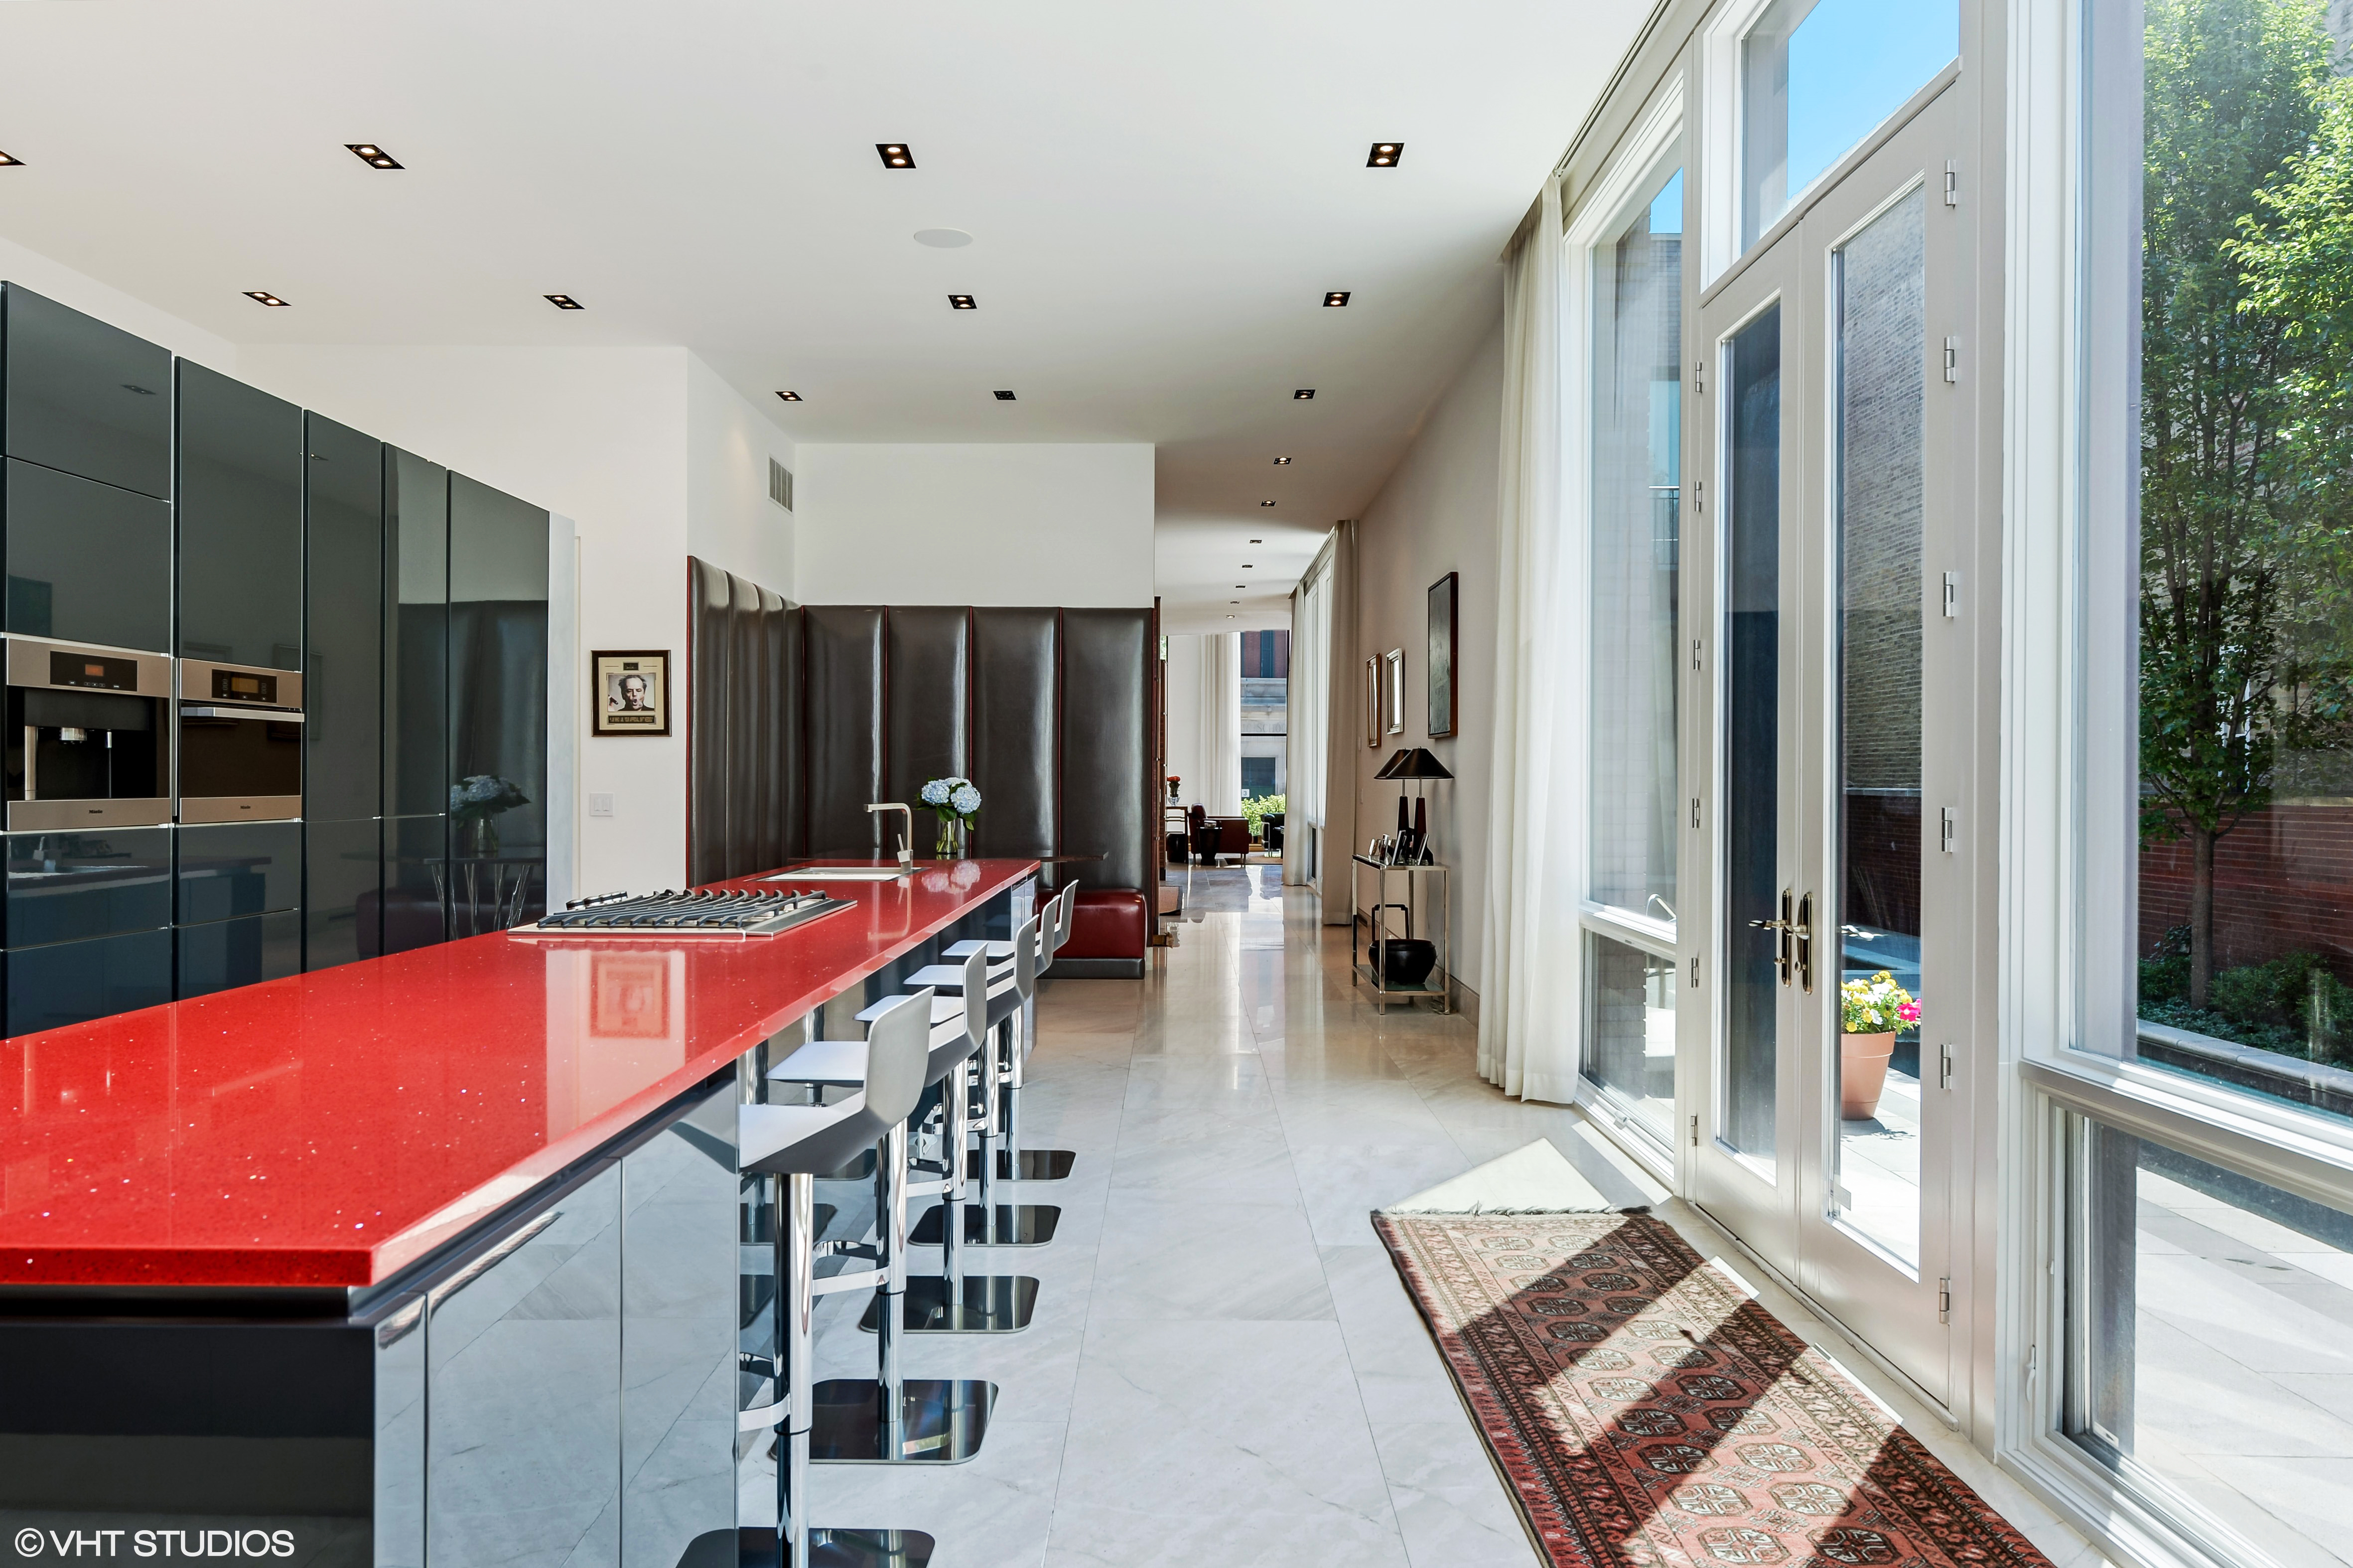 Open plan minimalist kitchen with red counter top